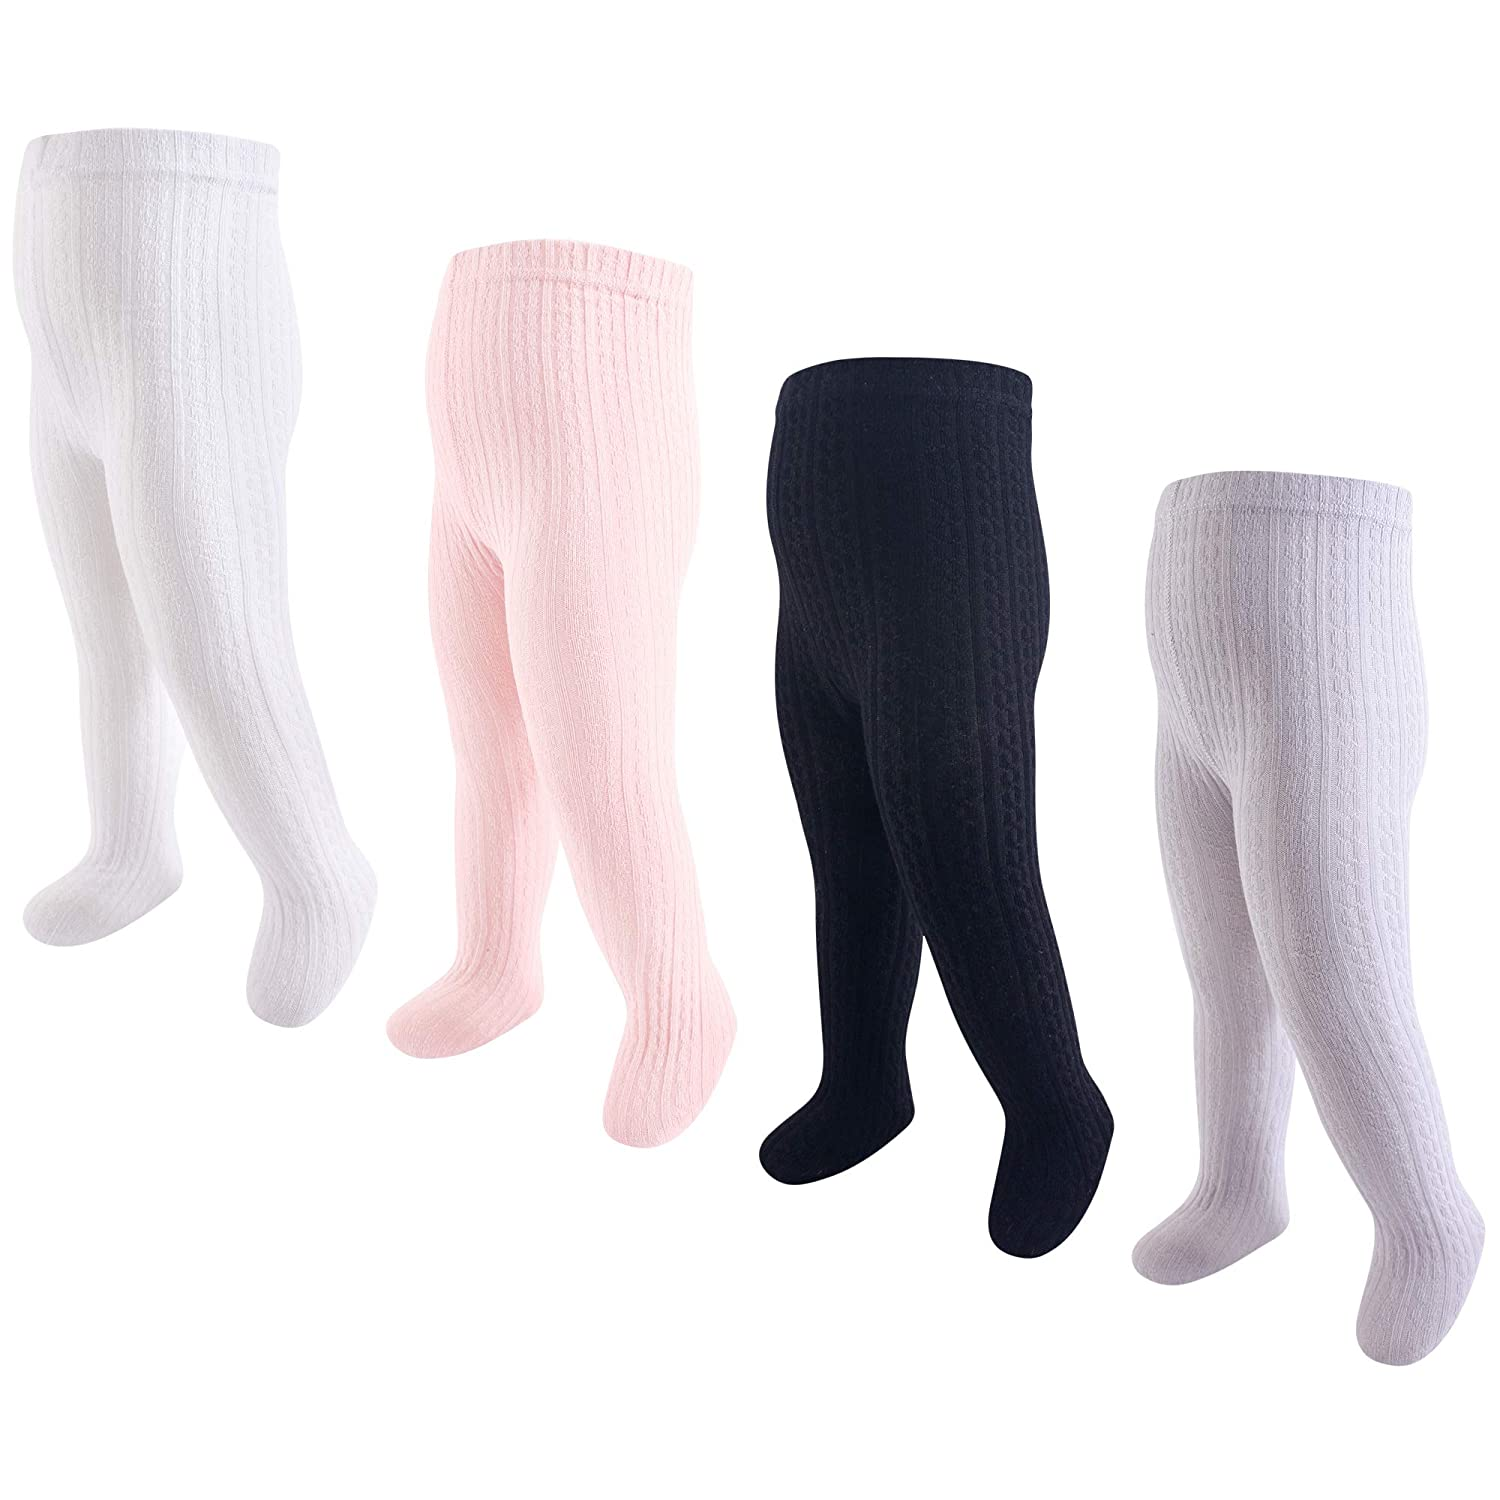 2 Pairs Little Baby Girls Basis Footed Tights Fall Solid Cotton Cable Knit Pantyhose